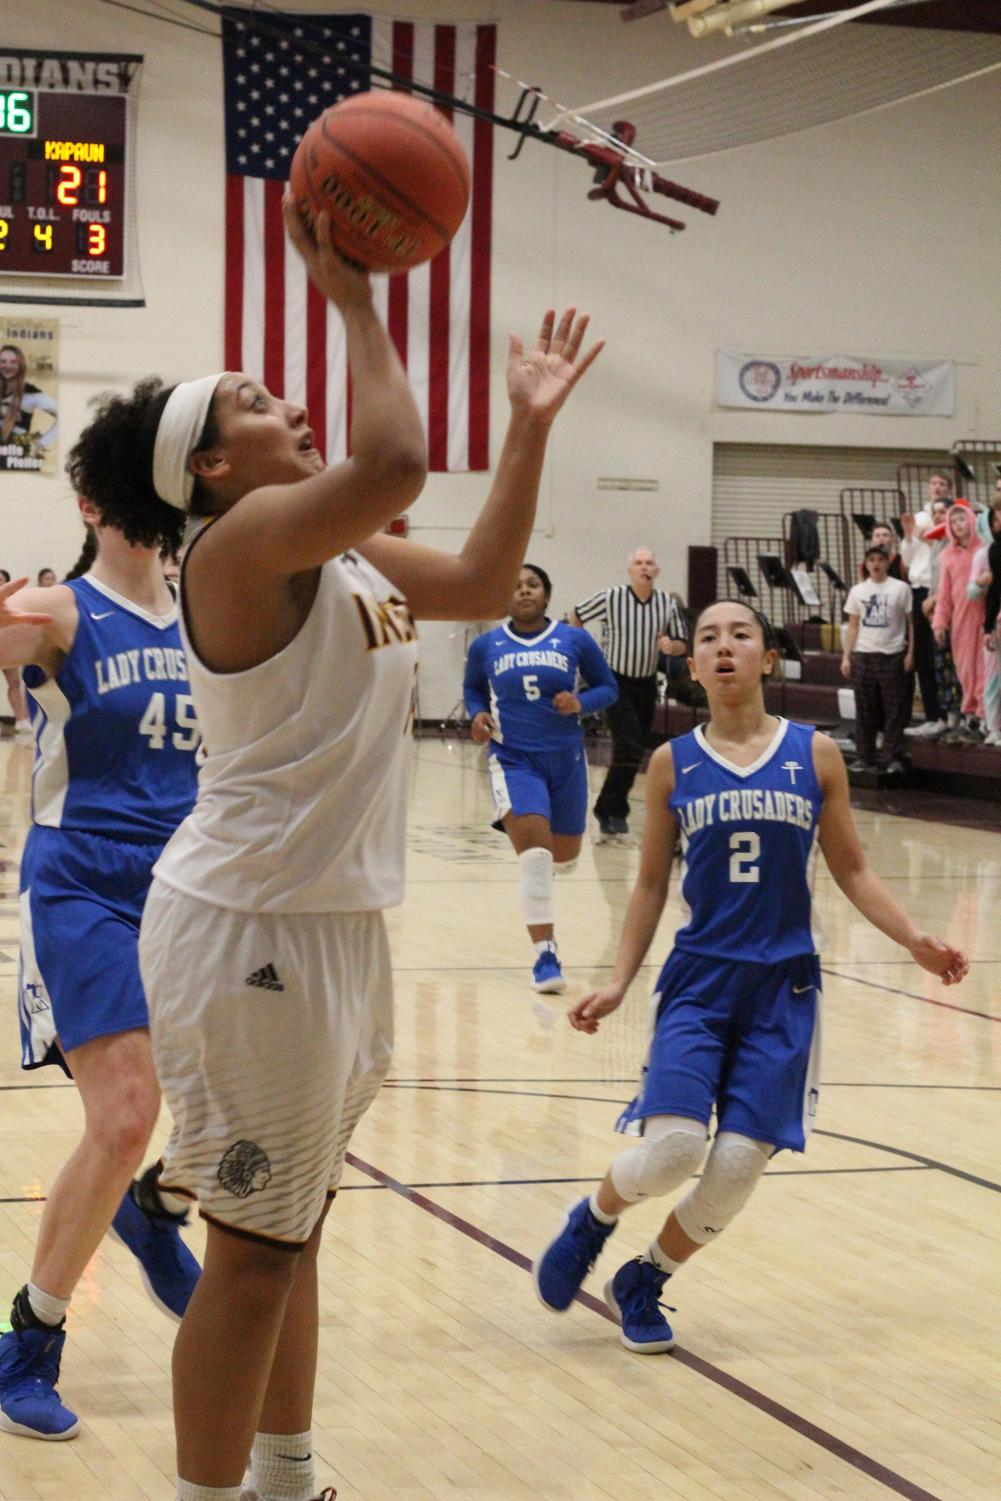 Freshman Taleia McCrae attempts a basket at the first round of Sub-State at home against Kapaun Mt. Carmel. The Indian basketball team ended its season 14-8 after a loss against the Goddard Lions.